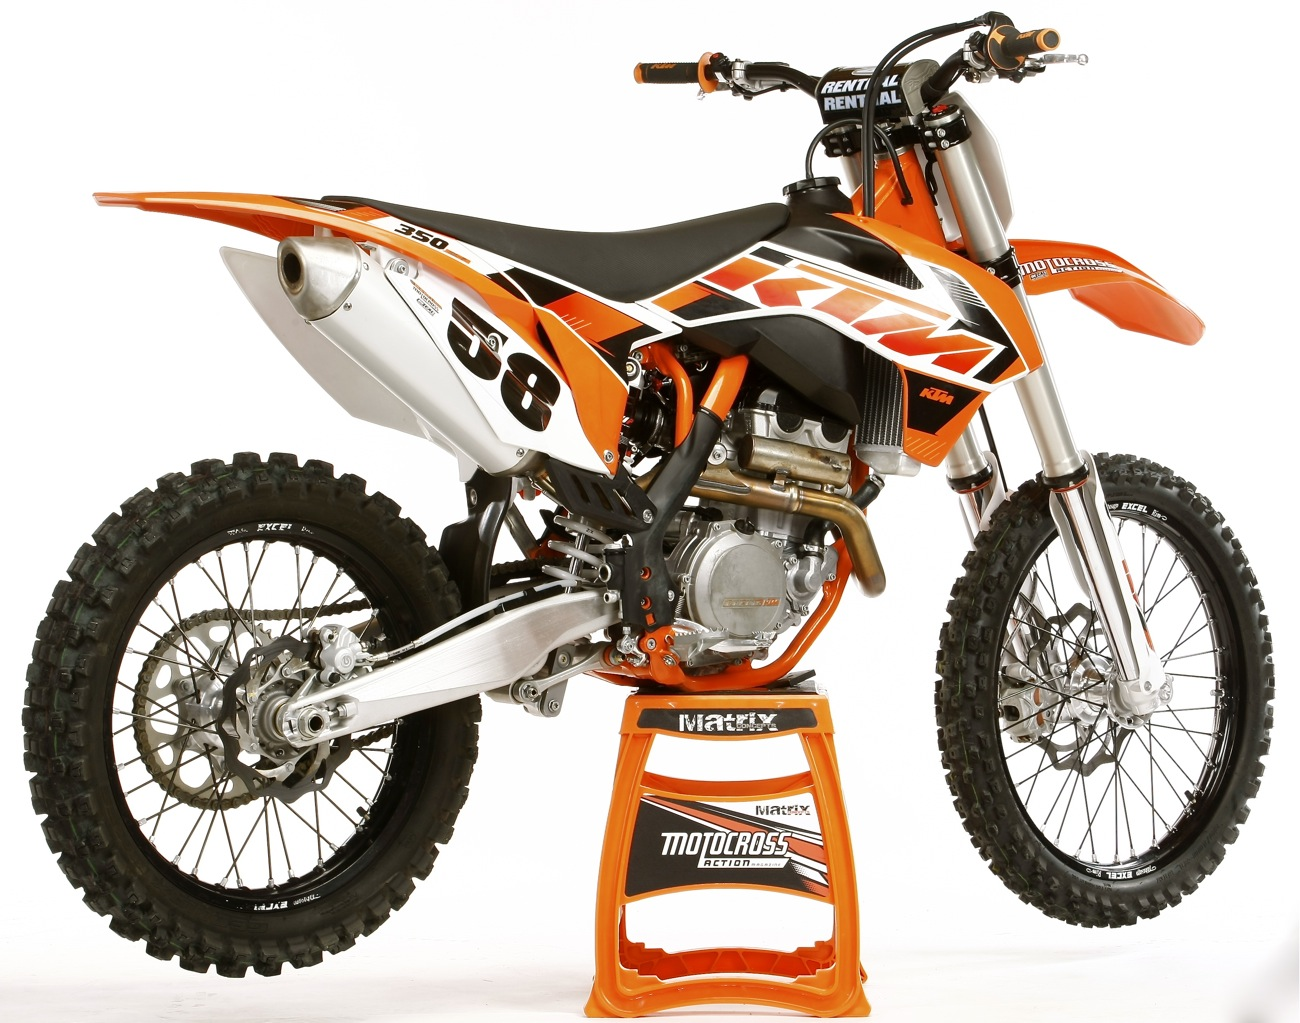 Mxas 2015 Ktm 350sxf Motocross Test Non Organic Winner Xcf 350 Wiring Diagrams 350kright